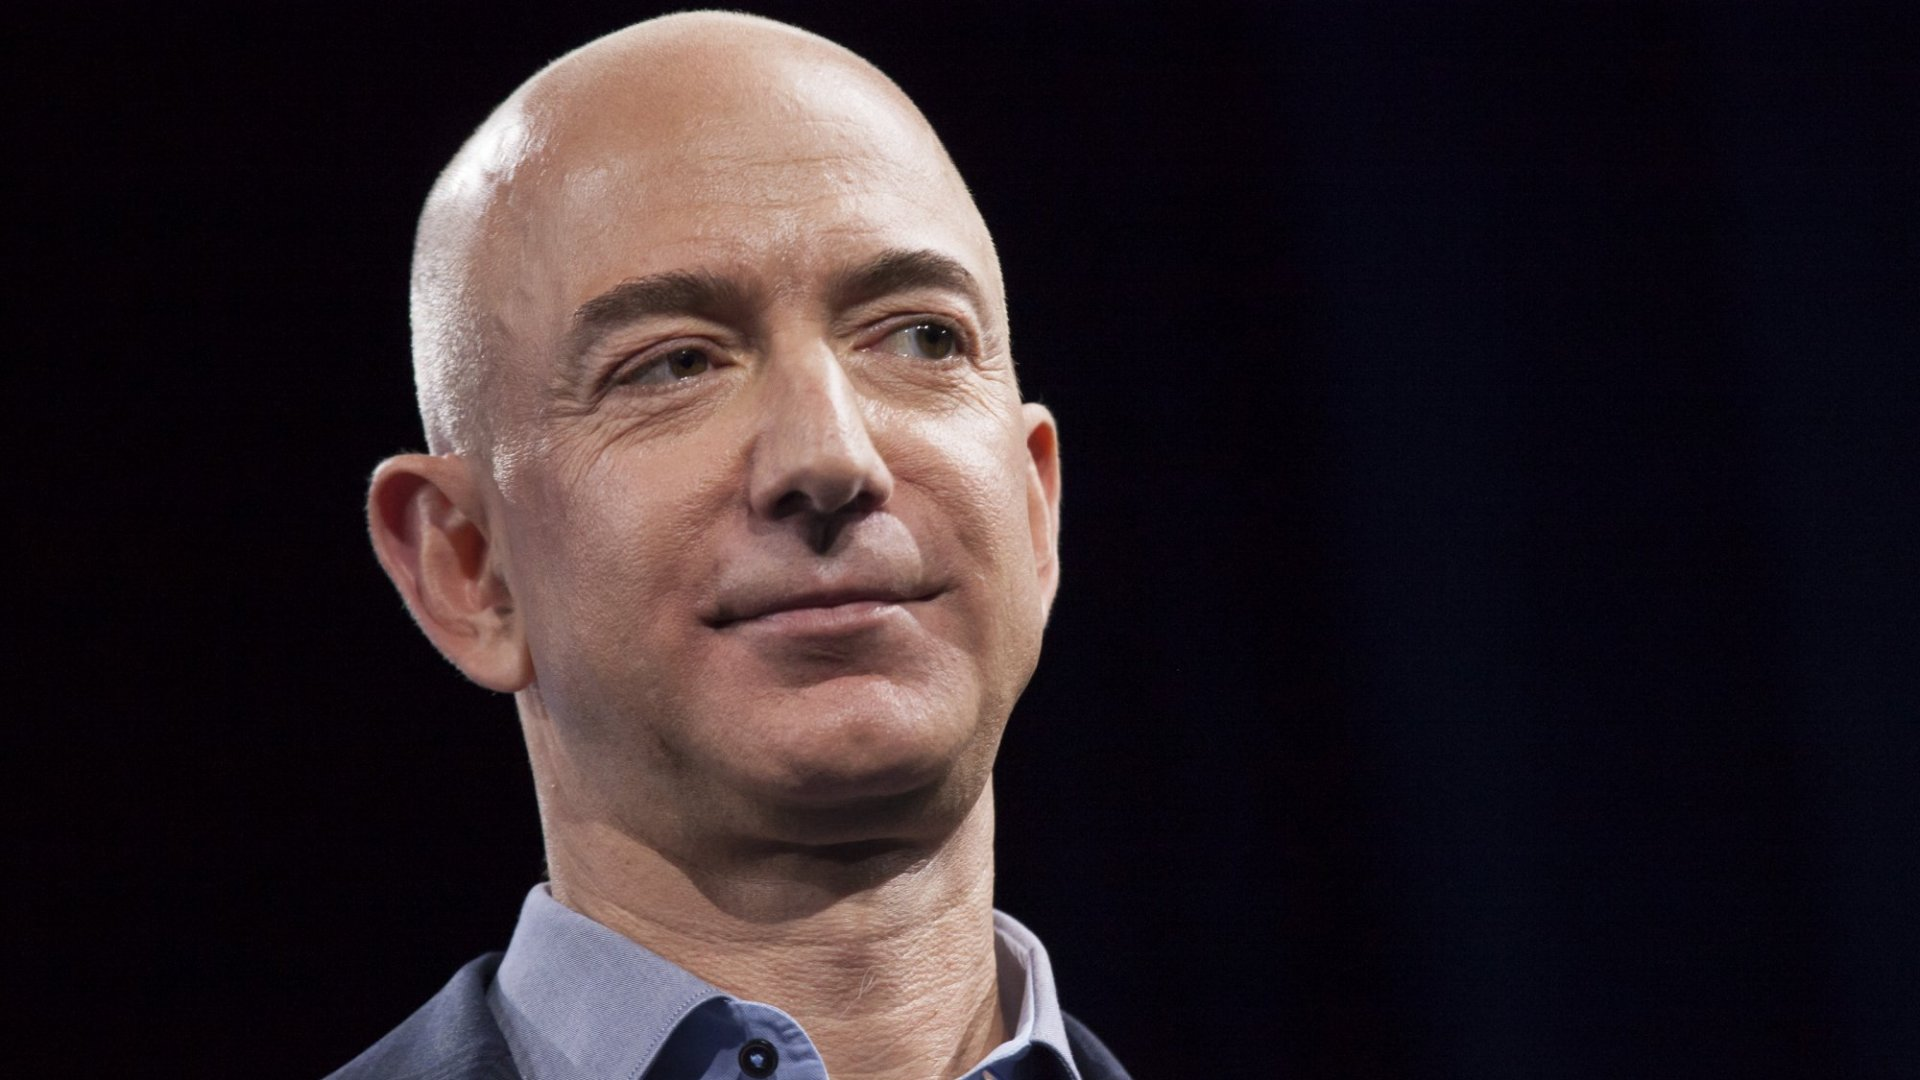 Jeff Bezos Made $6 Billion in 20 Minutes This Week